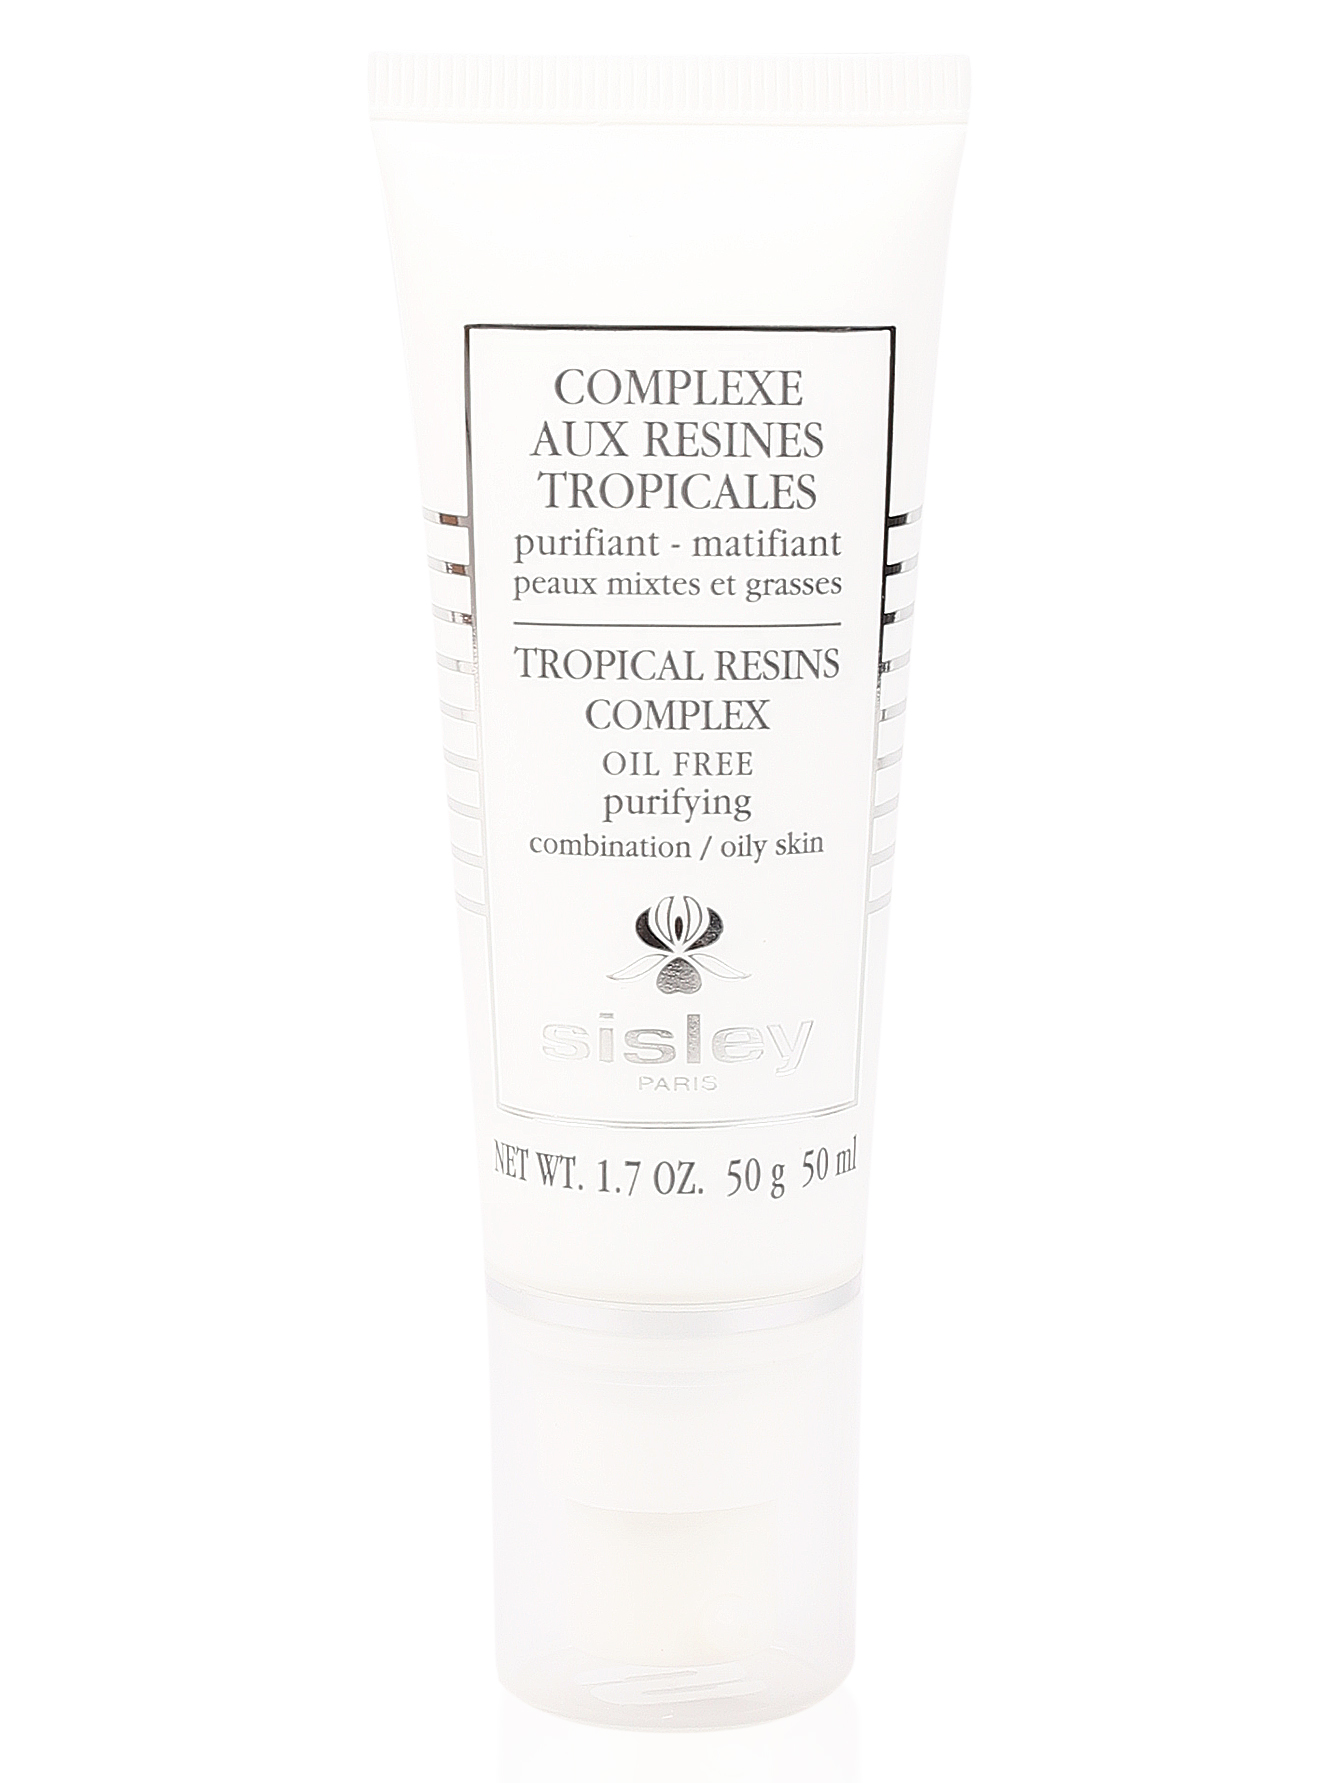 Комплекс -Tropical resins complex, 50ml  - Общий вид